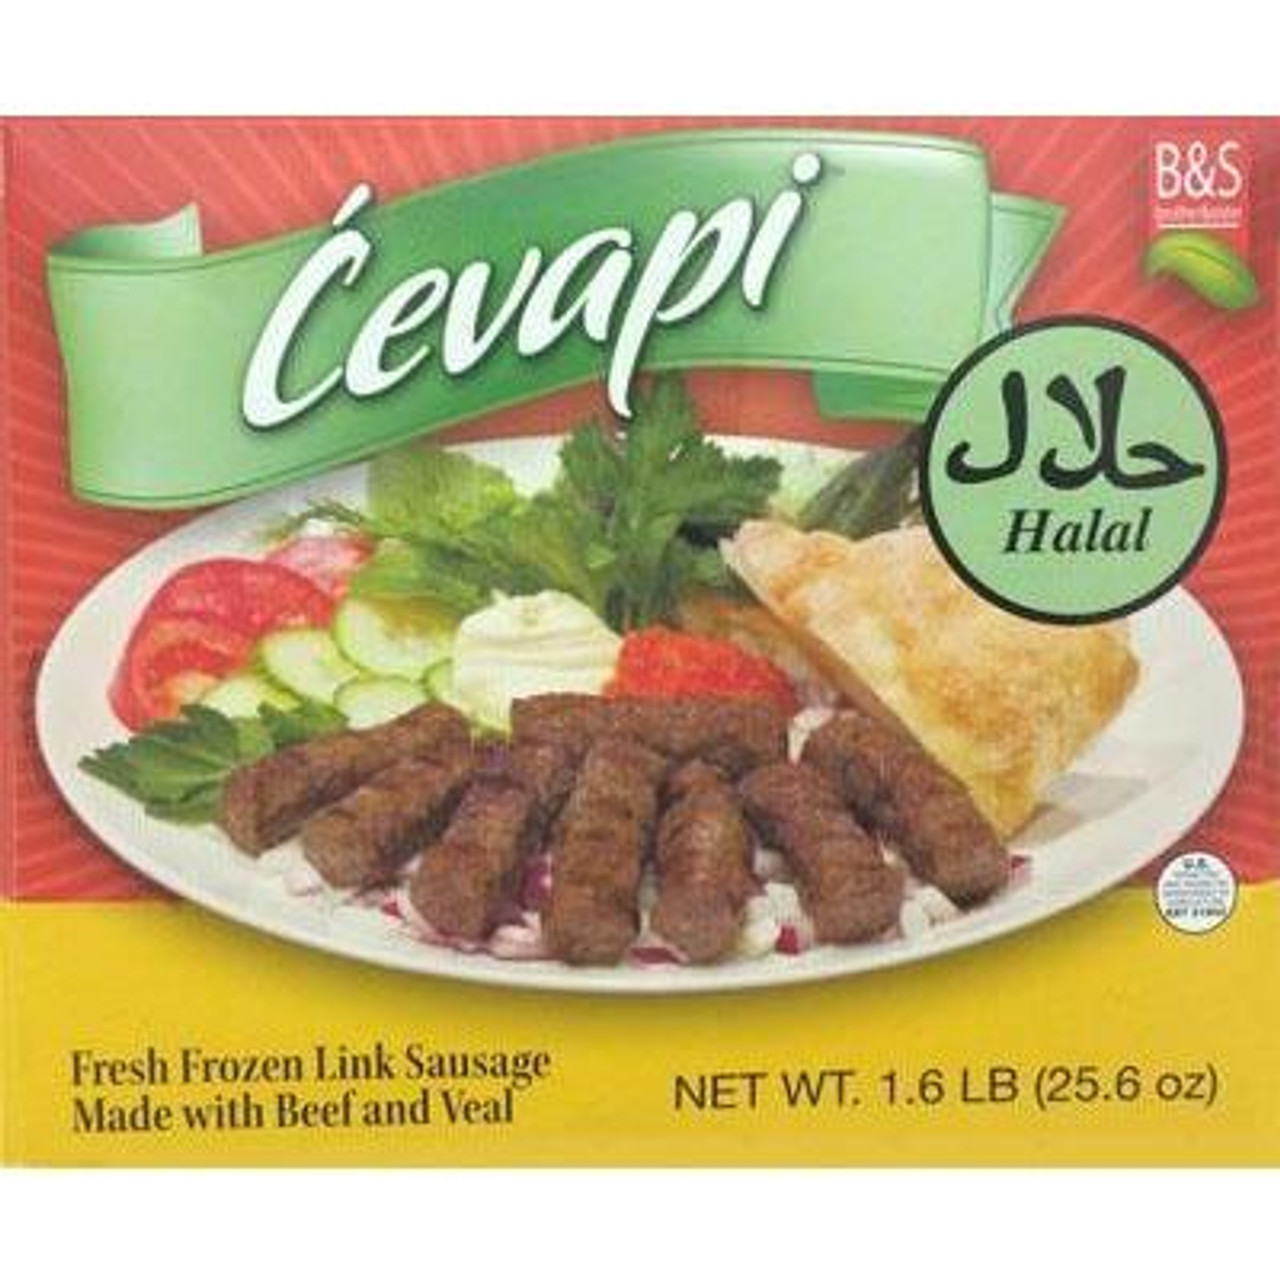 BROTHER&SISTER Cevapi Halal Fresh Frozen Link Sausage 1.6lb (Red Pack) [GA STORE PICK UP AND LOCAL DELIVERY PRODUCTS ONLY]